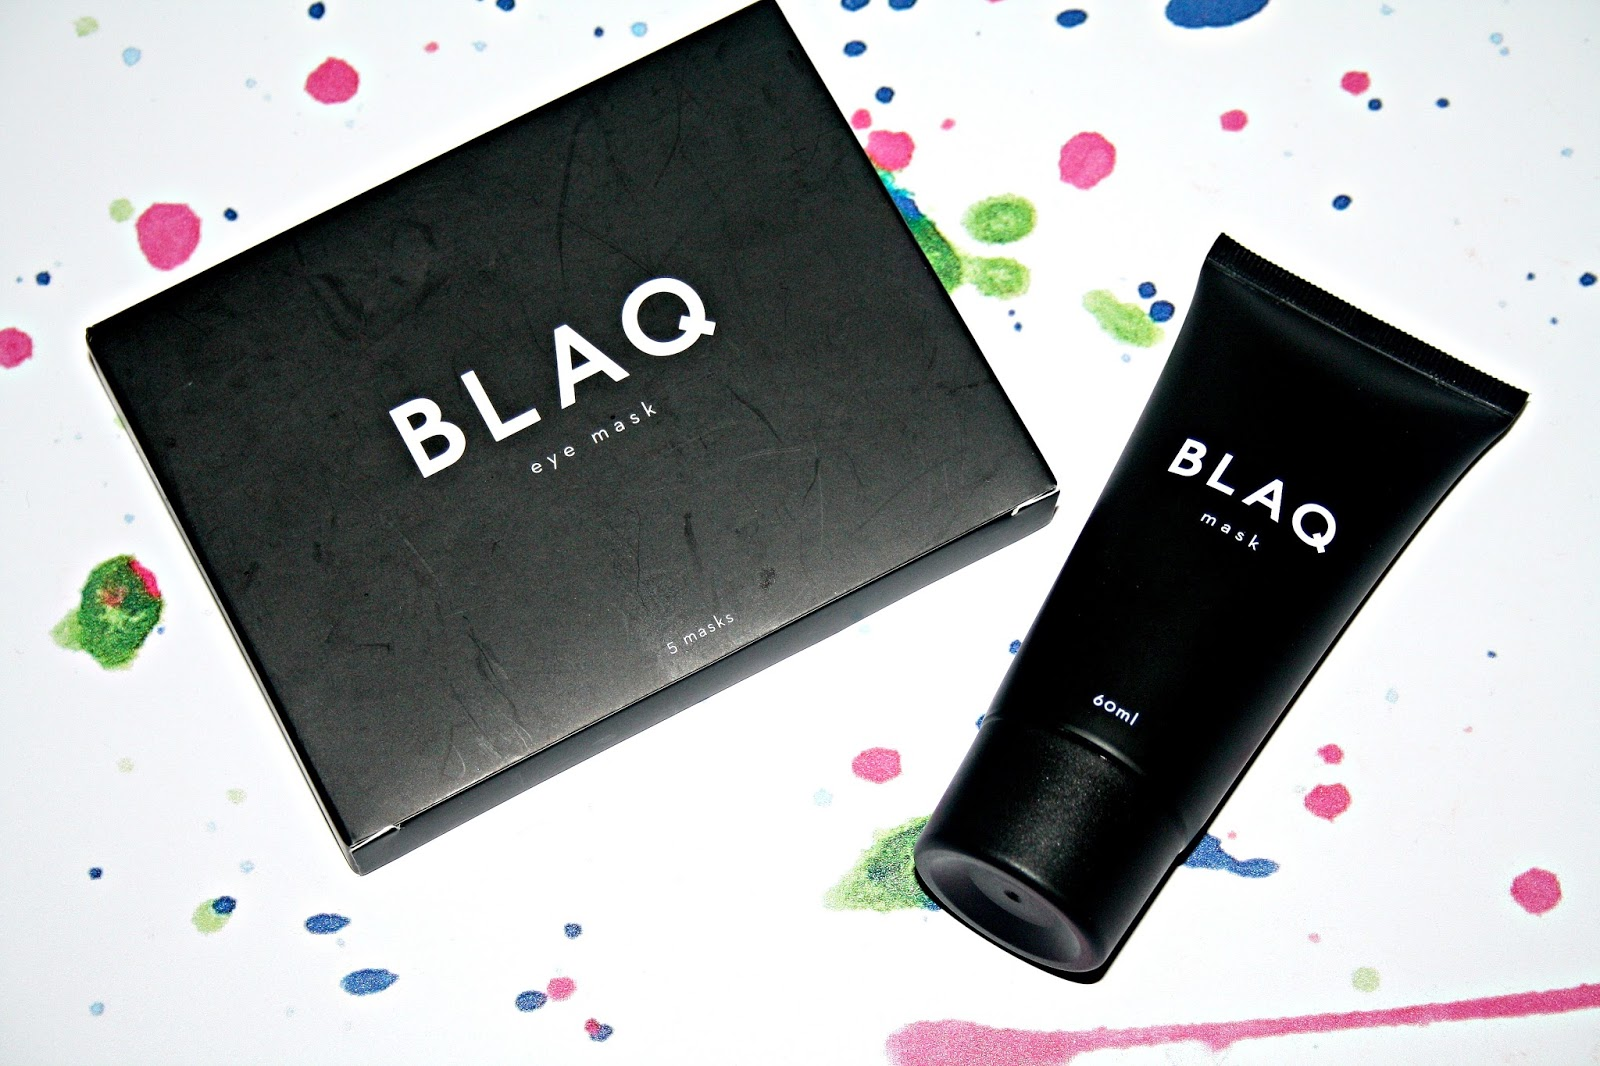 Introducing Blaq Beauty Queen Uk Bloglovin Humphrey Skin Care Activated Charcoal Bodywash 500ml Is Built On The Basis Of One Core Ingredient